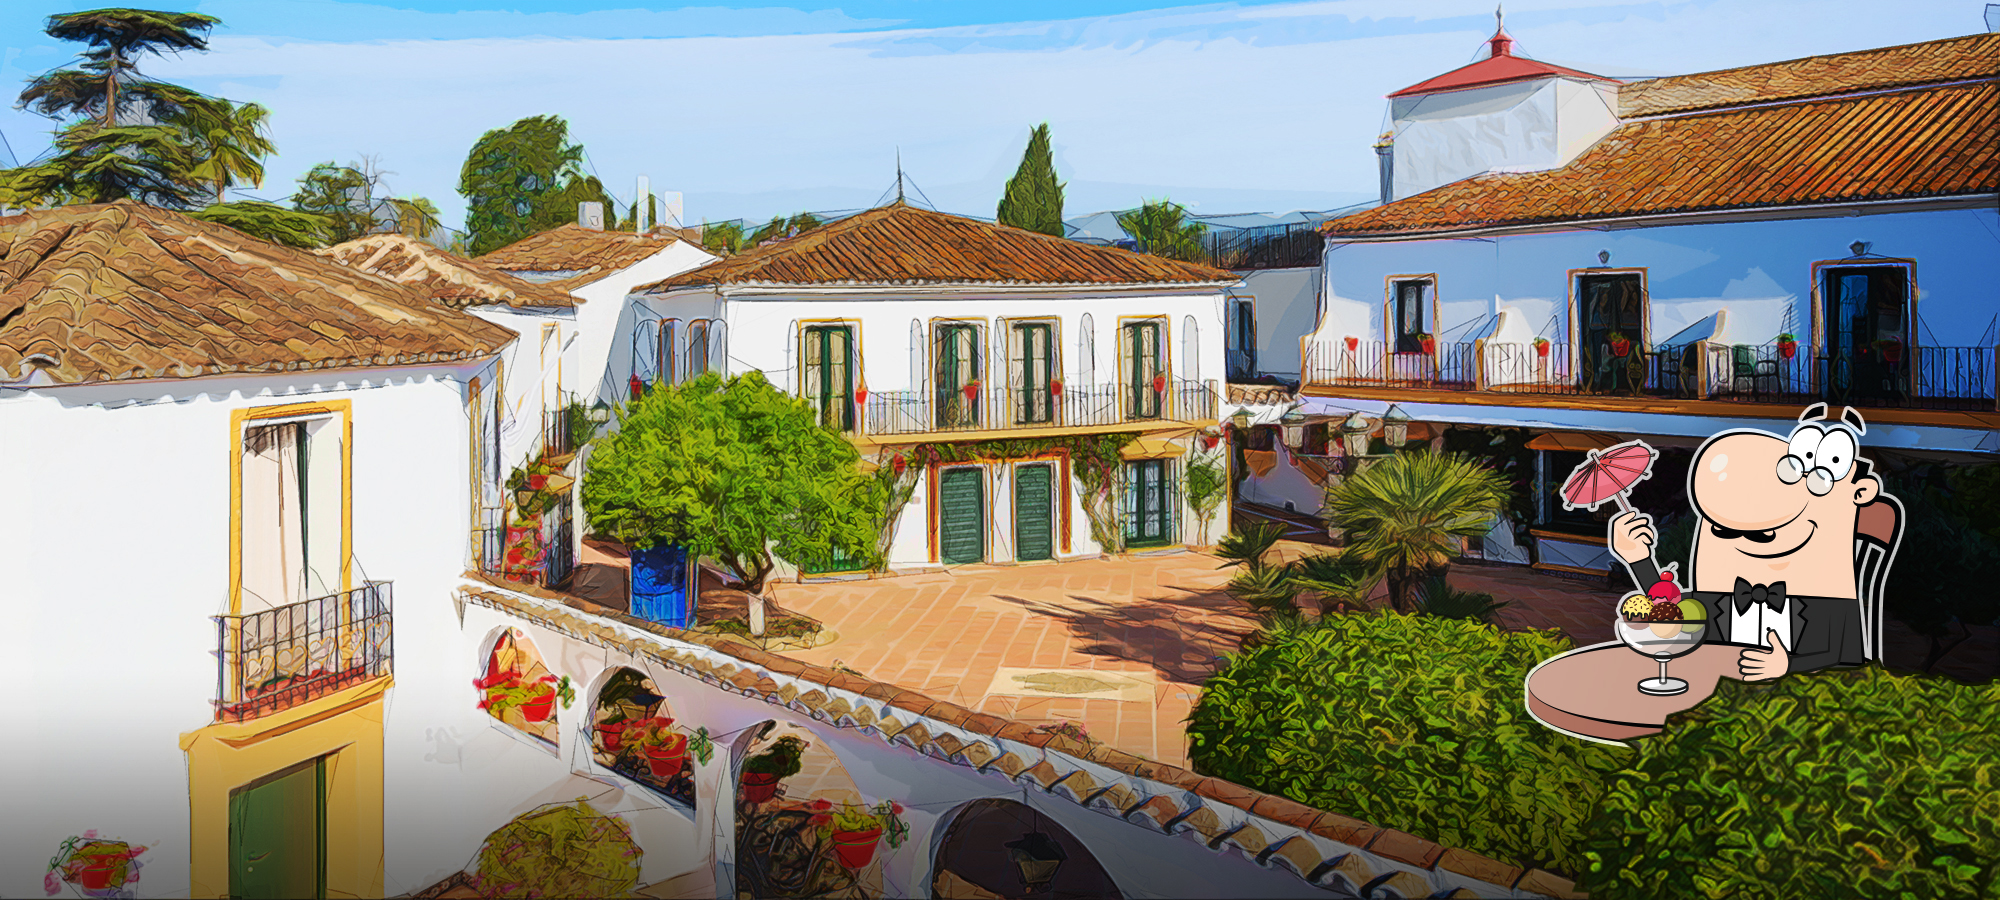 What to try in Marbella: 10 outstanding Spanish dishes